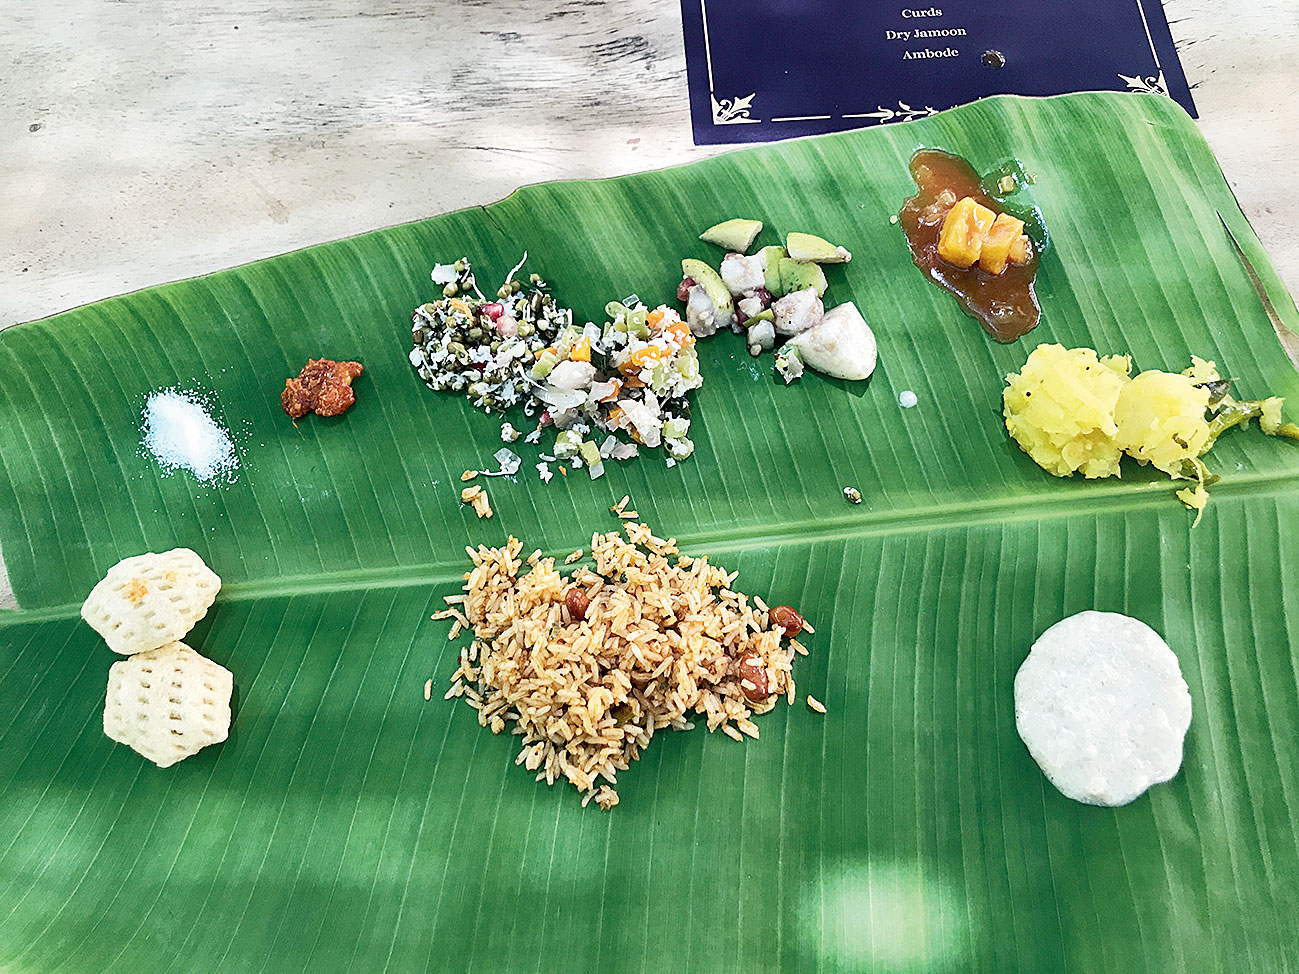 A traditional south Indian lunch